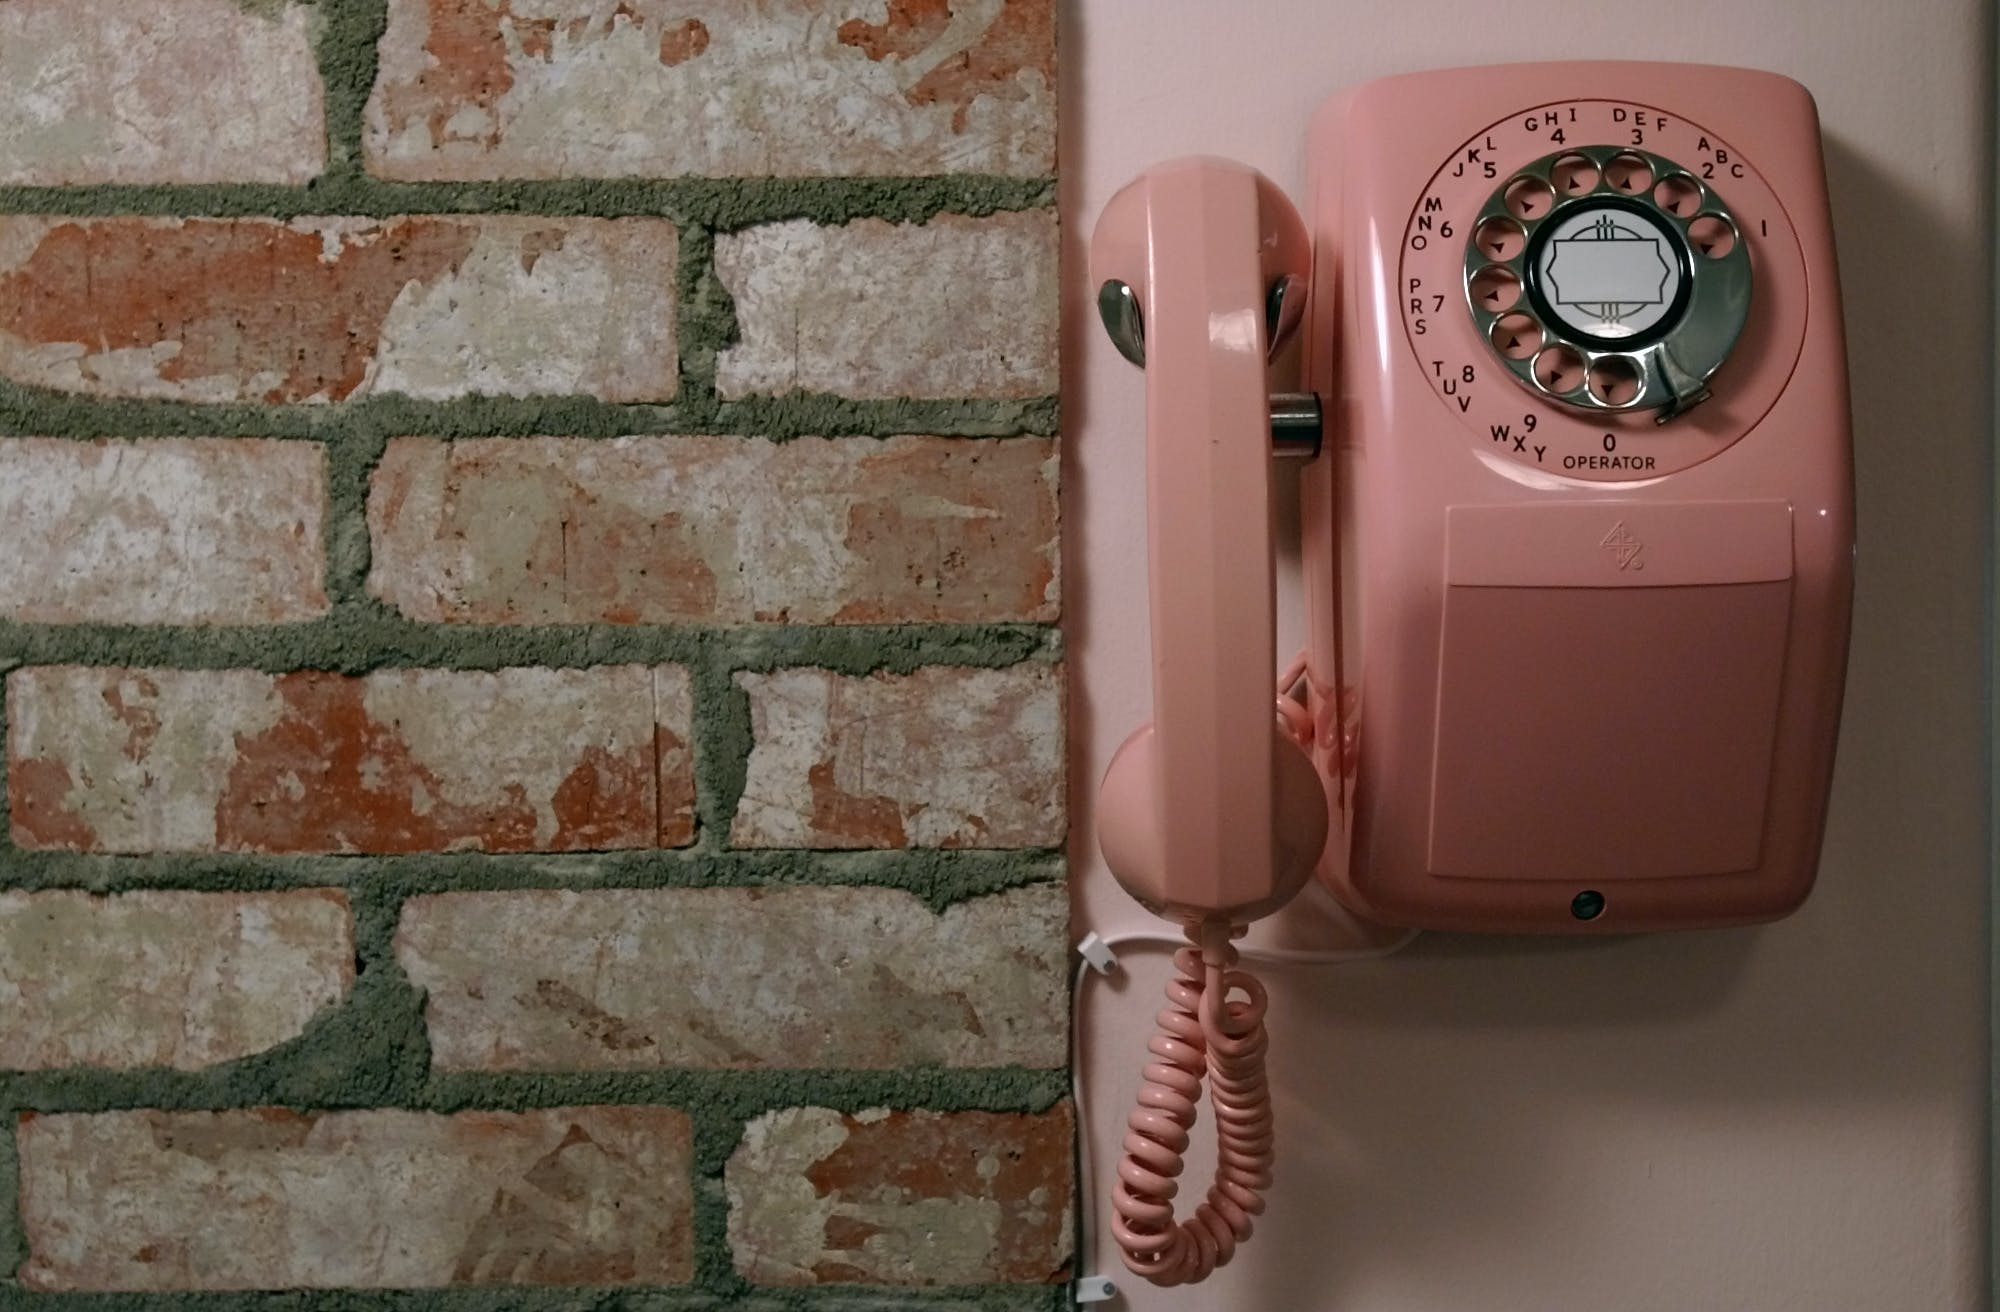 a pink rotary phone mounted on the kitchen wall